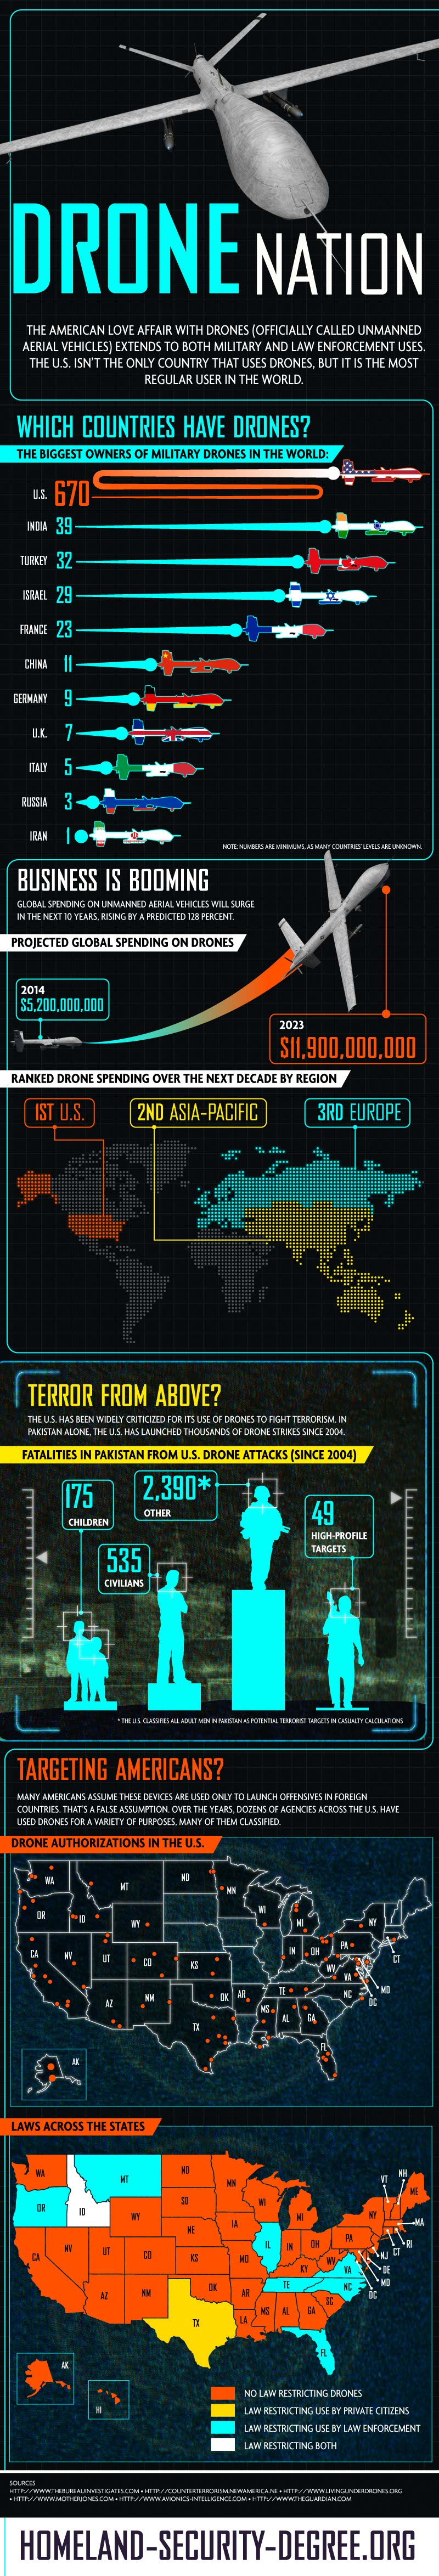 Worldwide Drone Usage -Infographic